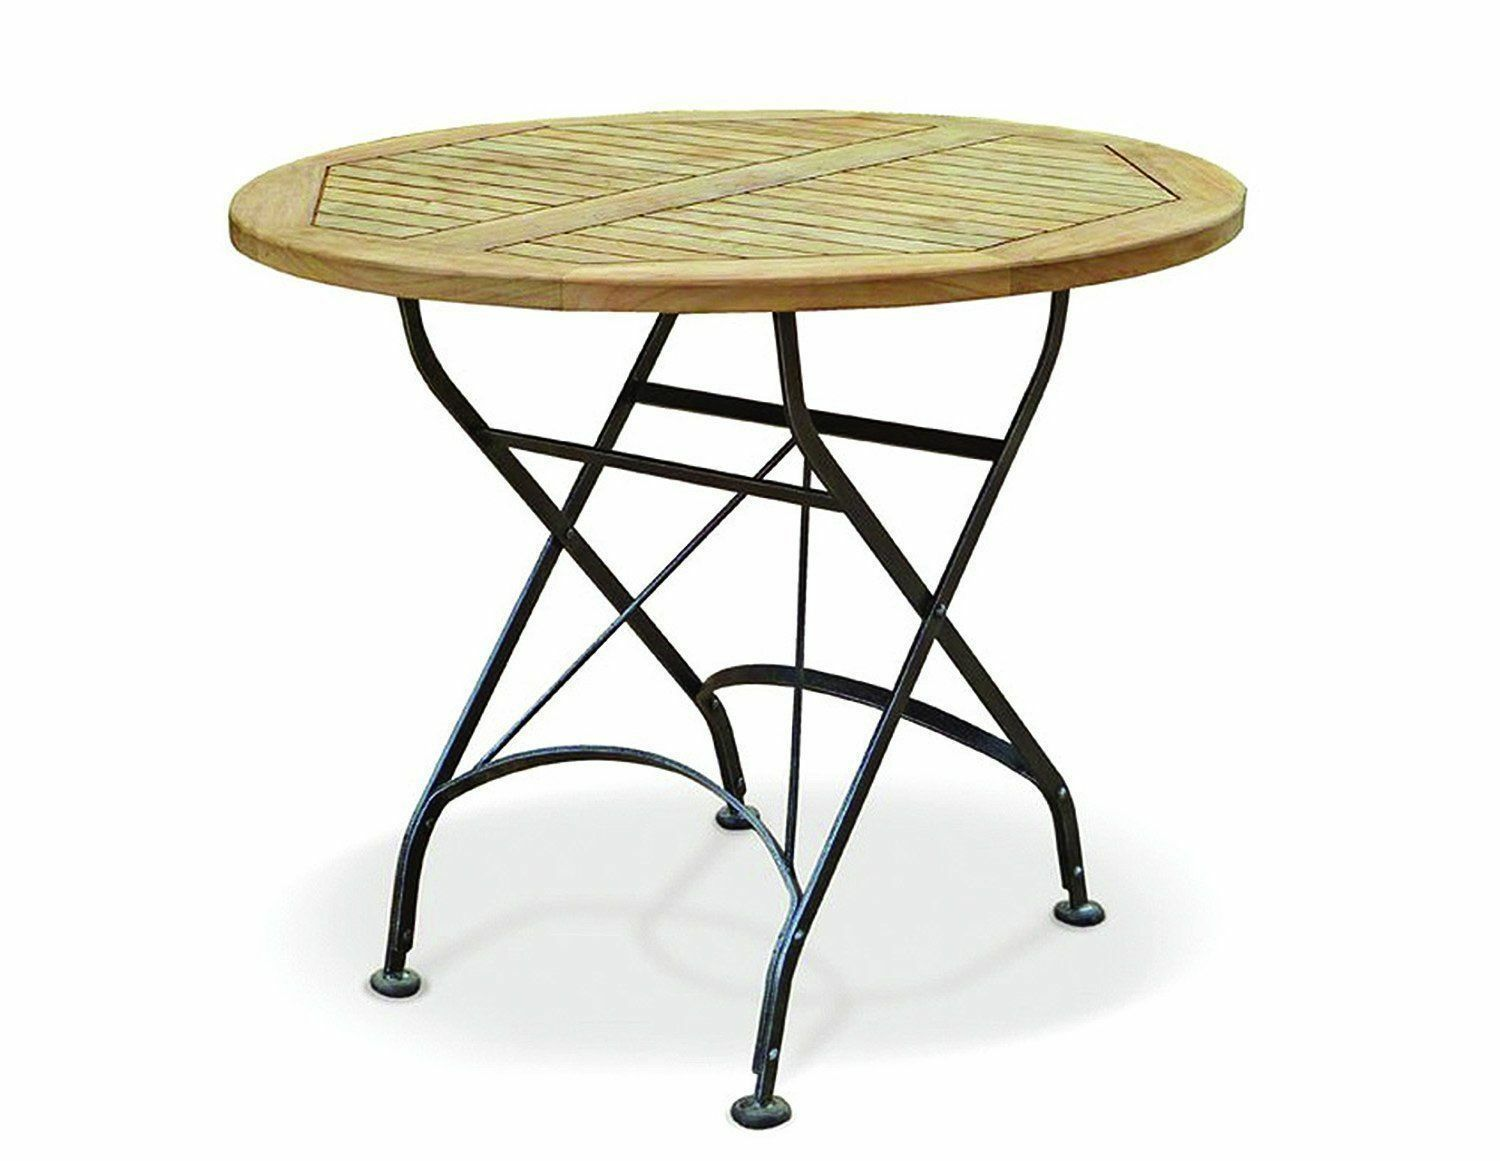 Café round folding bistro table teak and metal 0 9m fully assembled